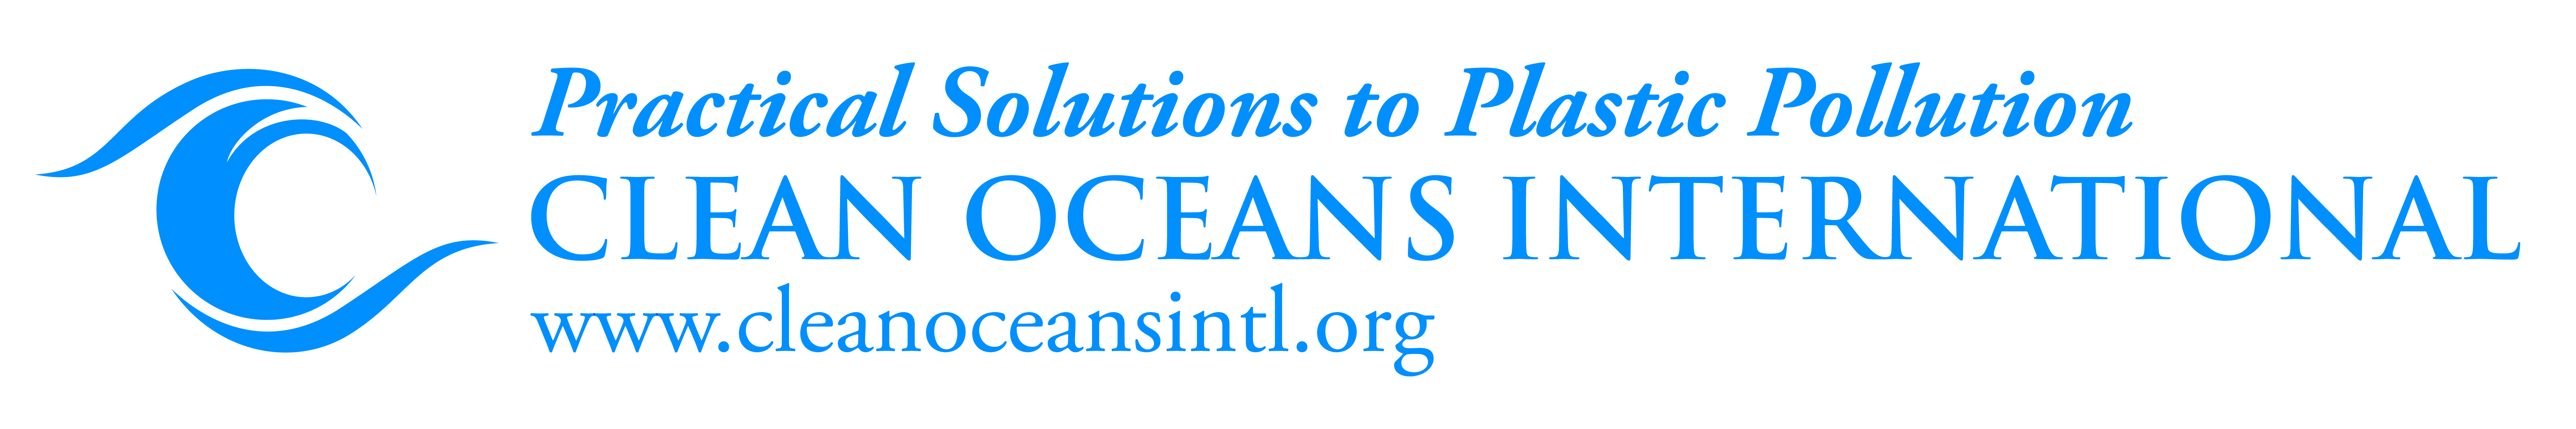 Clean Oceans International